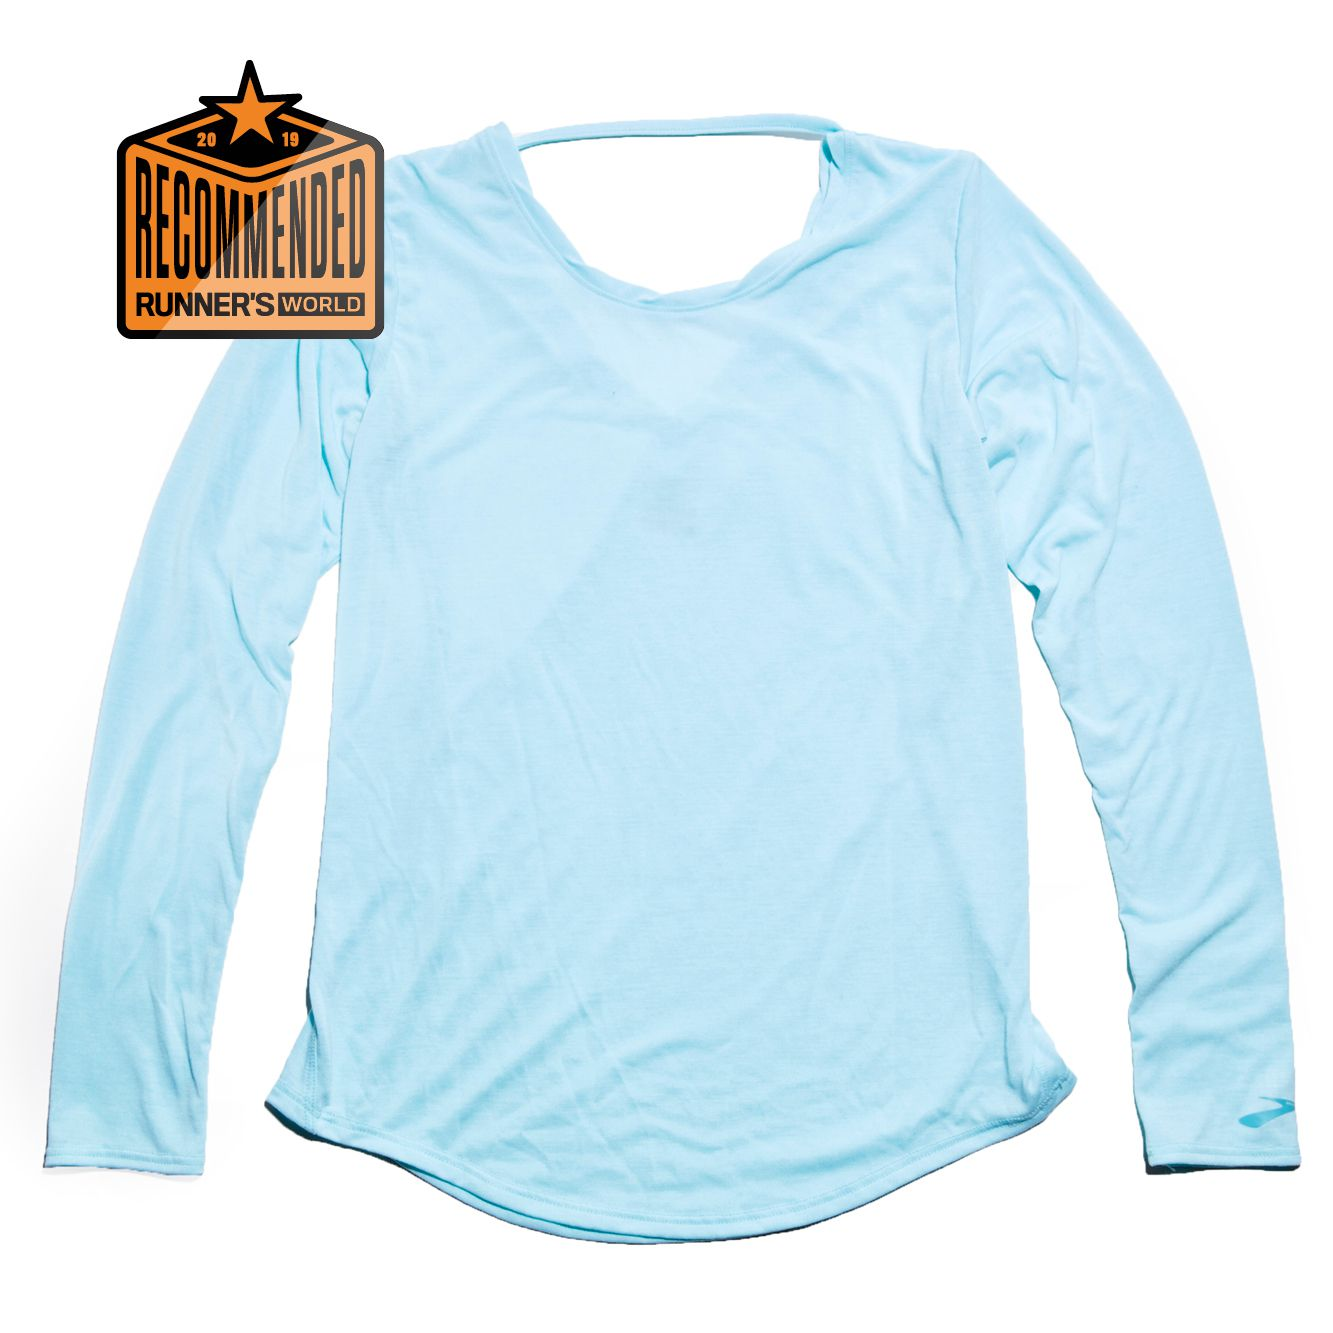 Clothing, Shoes & Accessories Womens Ladies Long Sleeve T Shirt Top Wickable Breathable Running Training Gym Wide Selection; Women's Clothing